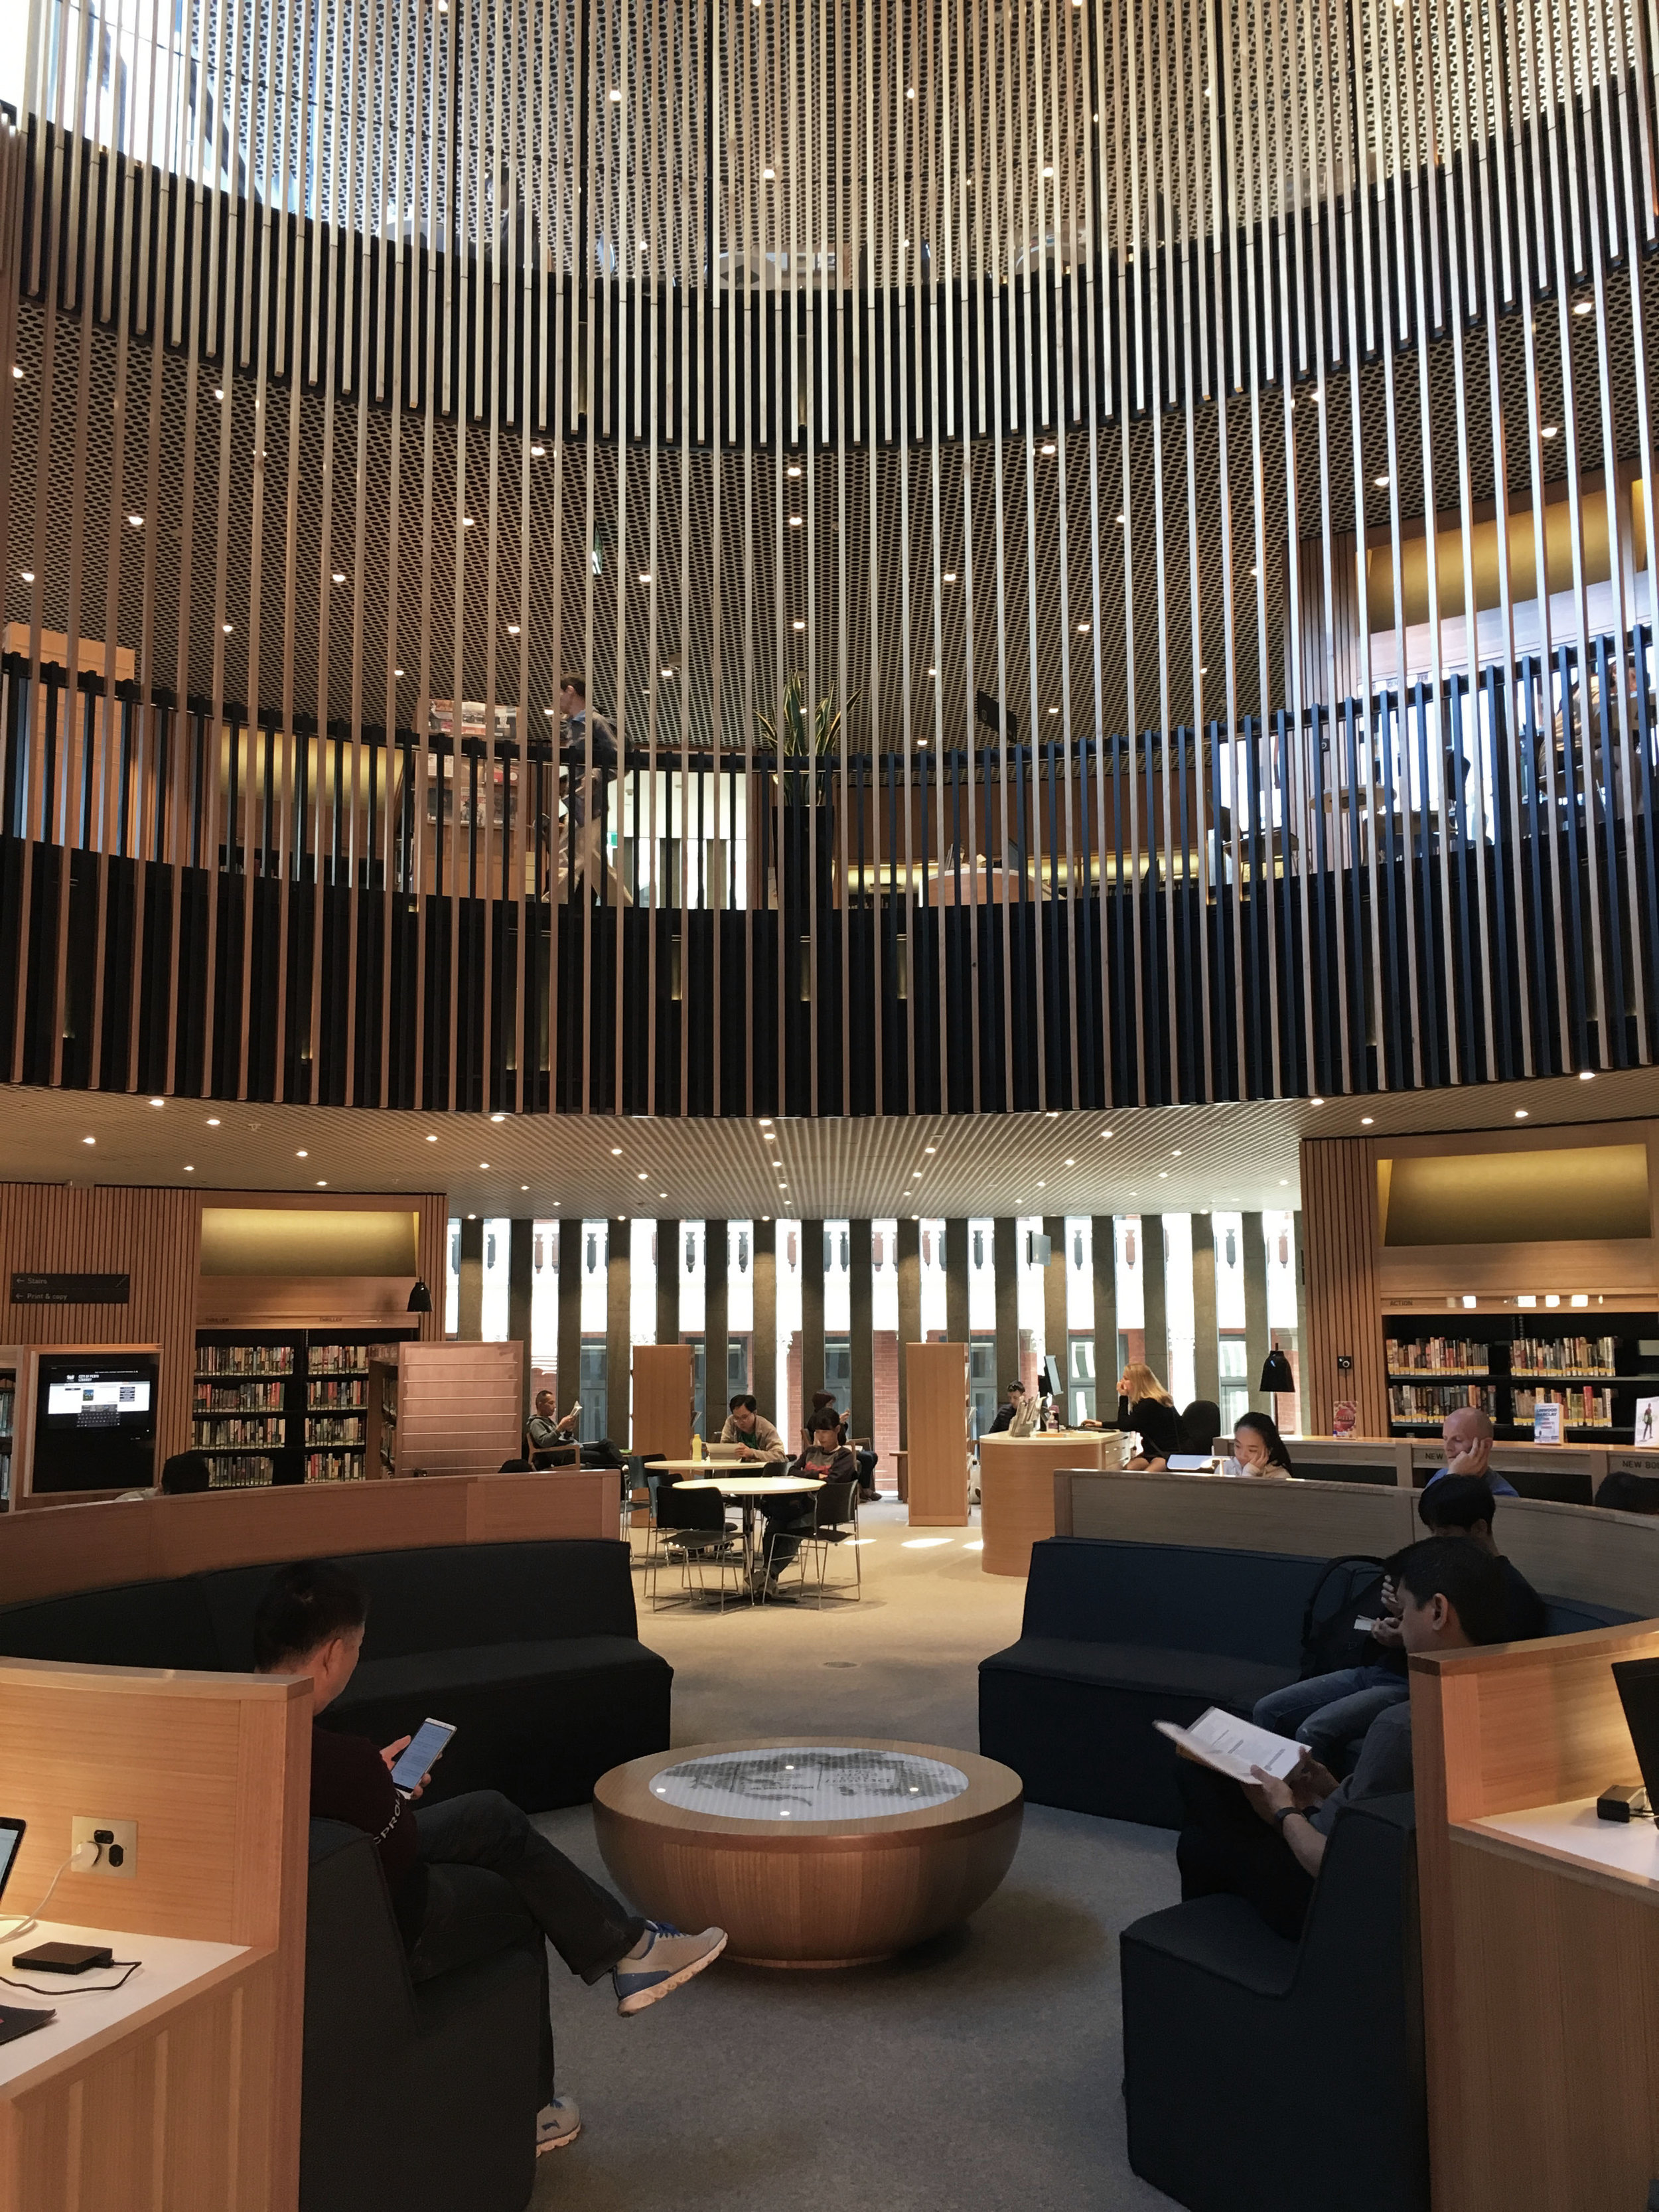 Lozidaze_City-of-Perth-Library_04